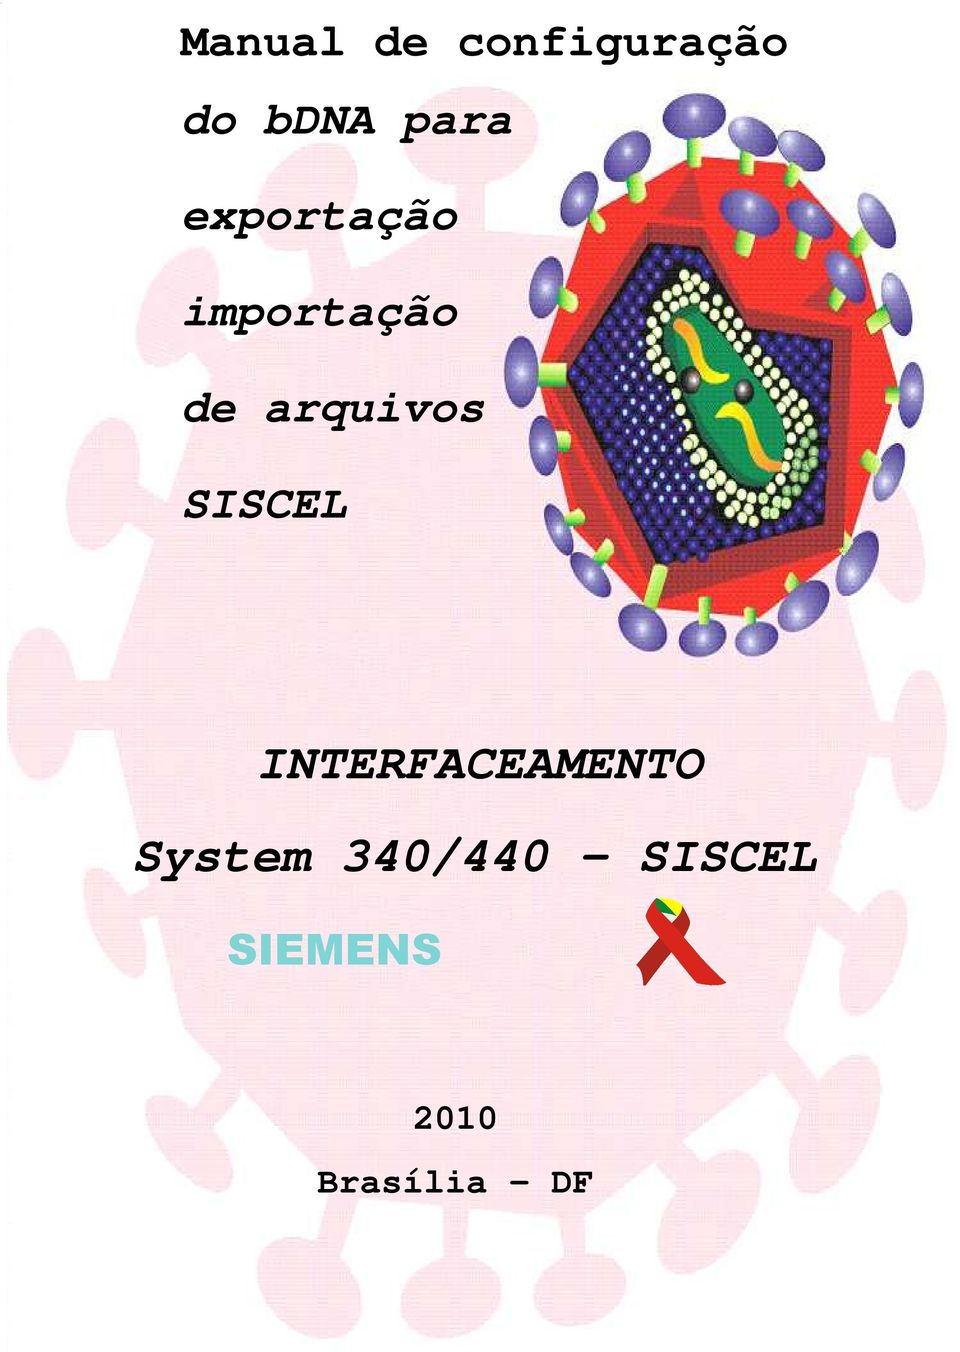 SISCEL INTERFACEAMENTO System